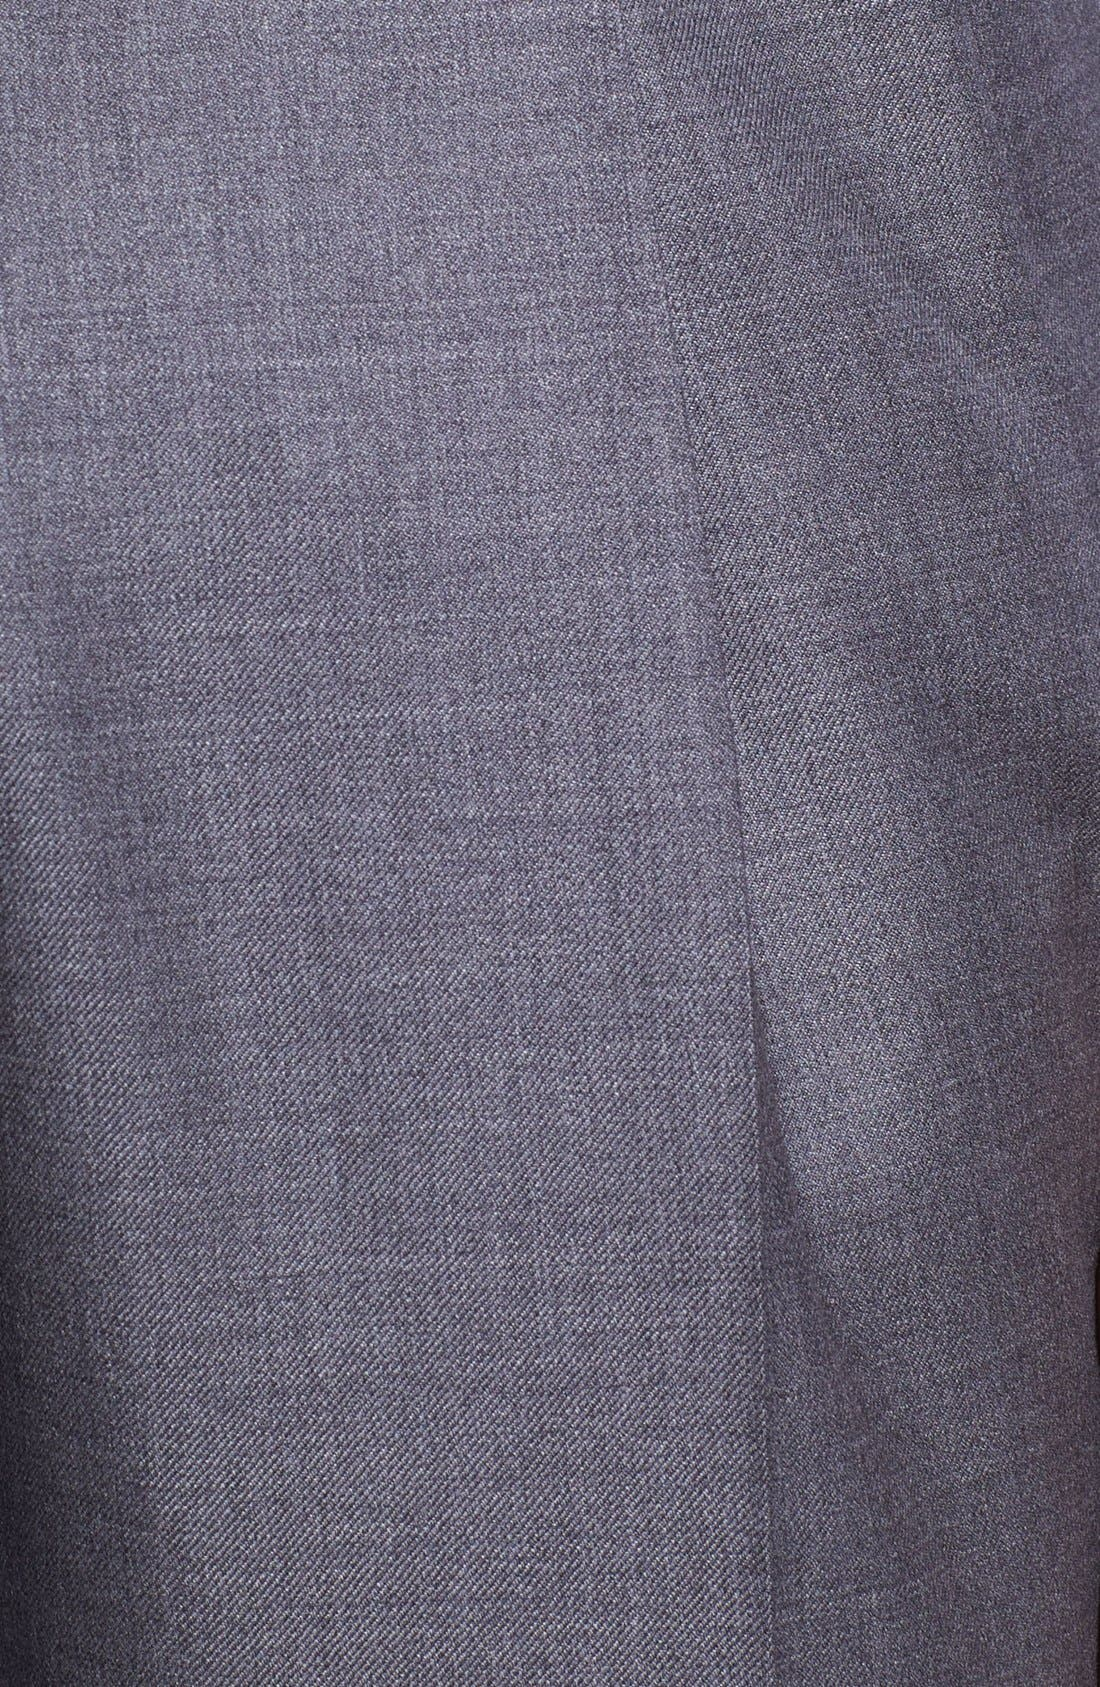 'Luxury Serge' Double Pleated Wool Trousers,                             Alternate thumbnail 2, color,                             MED GREY